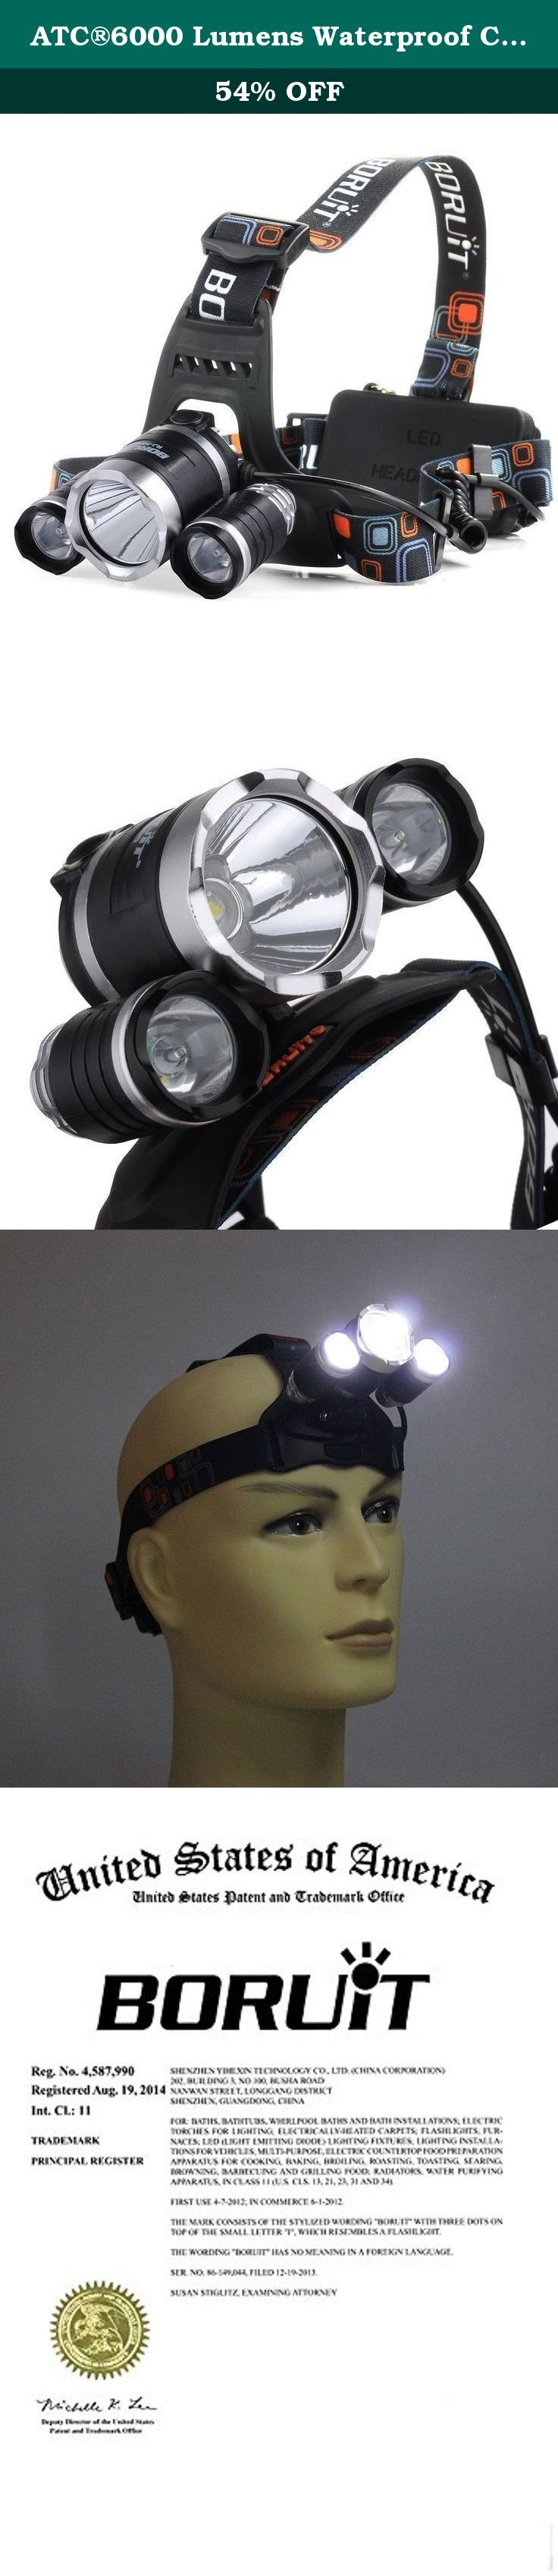 ATC®6000 Lumens Waterproof CREE XM-L T6 + 2 R5 LED Headlamp Torch Headlight + 2 Charger. Specifications: CREE LED Headlamp Model of LED: 3x CREE XM-L T6+2x XPG-R5 LED Model of Battery required: 2x 18650 3.7v (Battery no included in the package) Color: Black Dimension : 83 x 37 x 58mm Weight : 219g Headlamp Specification: Aluminum outer shell, high strength ,strong structure. 3* Led bulbs, Super brightness and durable Working Voltage: 3.6~4.2 V ,Light is very evenly spread in a flood…